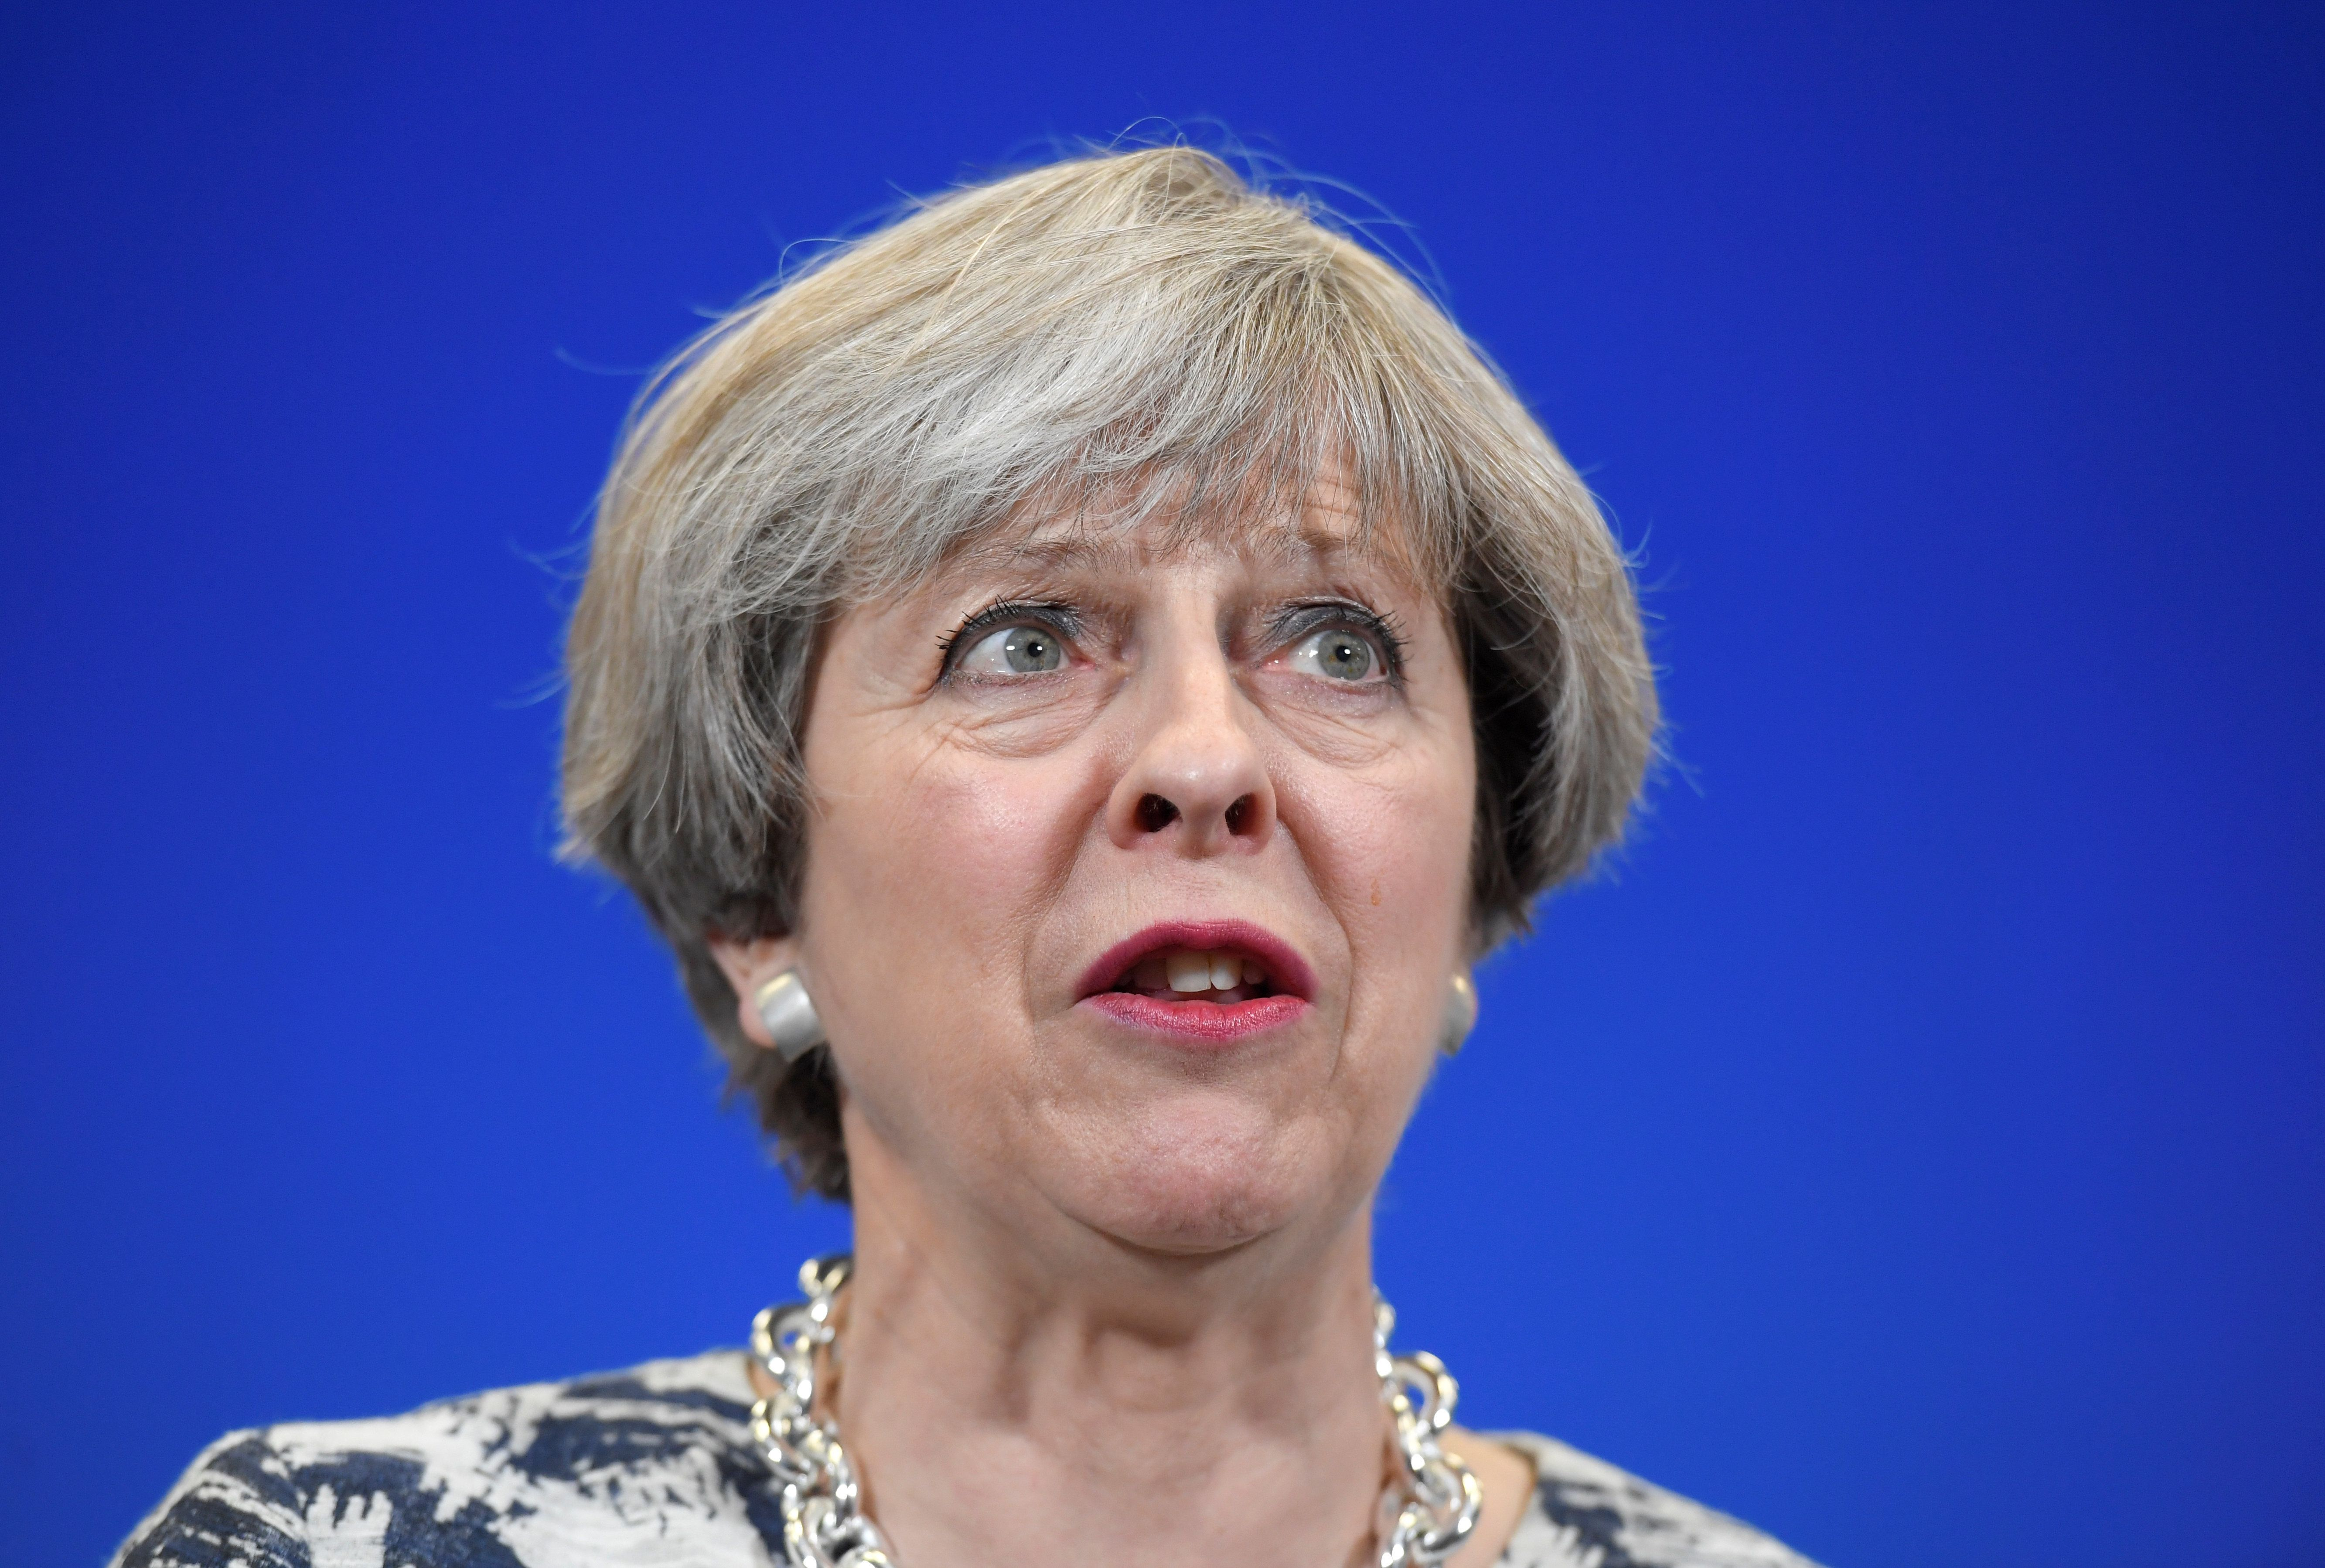 British Prime Minister Theresa May's snap vote gamble backfired, leaving her weakened government scrambling...